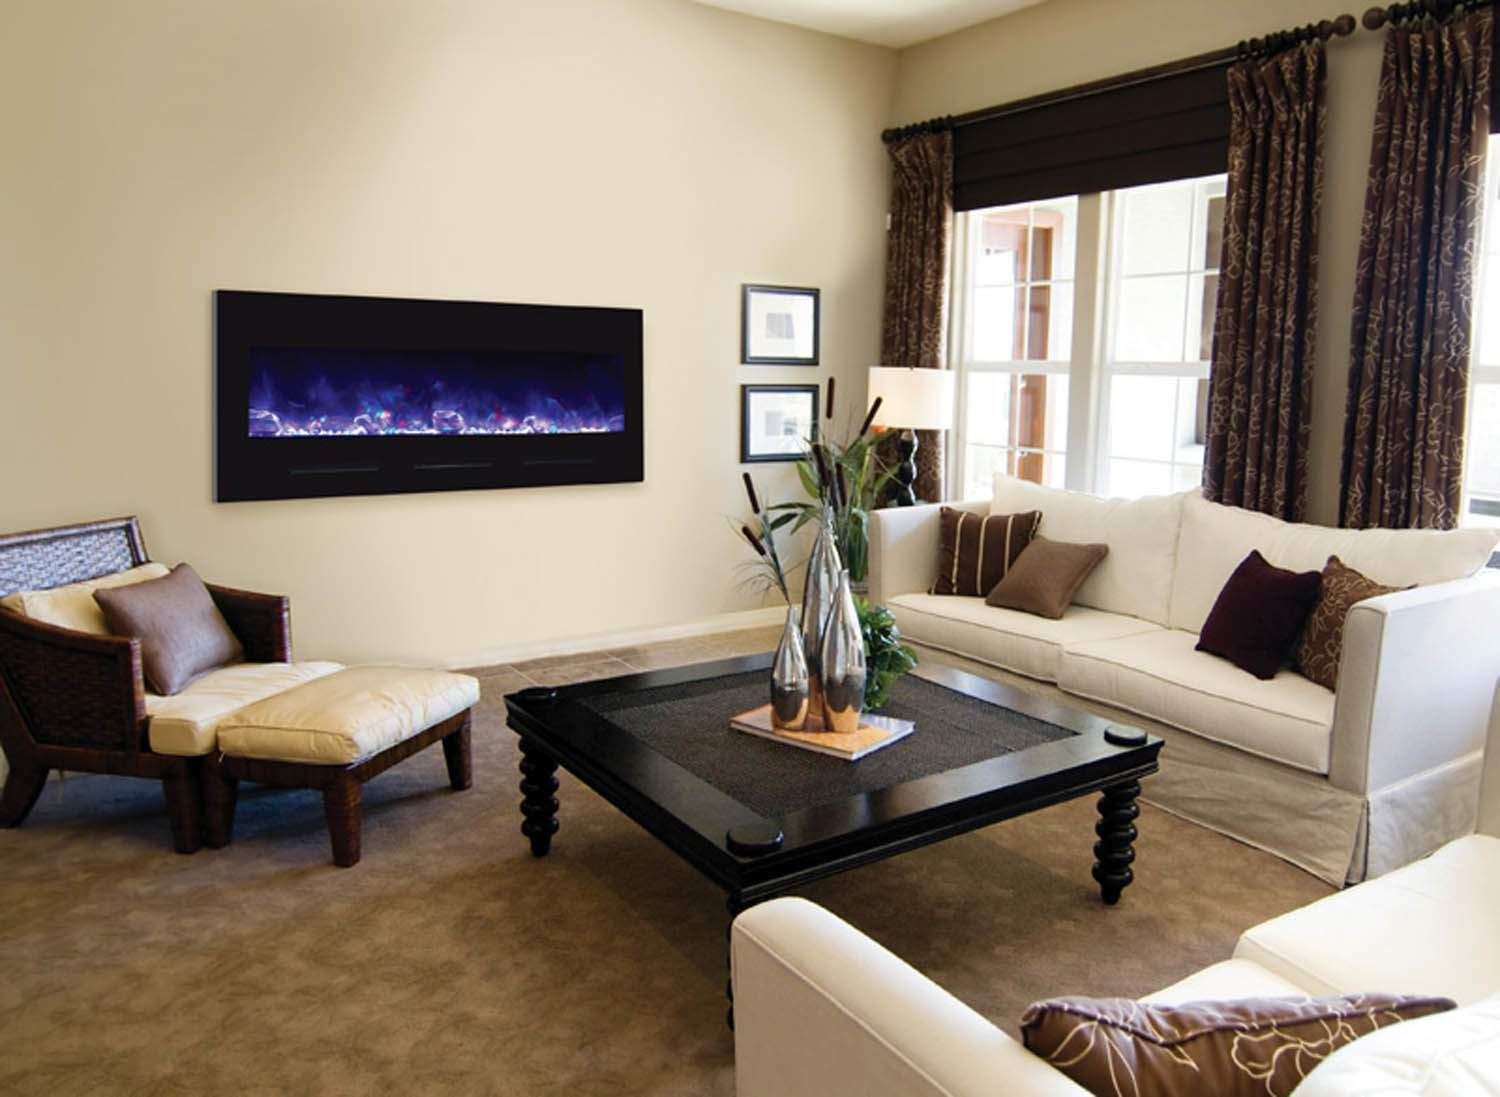 This Stunning Marvel Of Electric Fireplace Technology Will Dazzle The Eyes  And Warm Your Room With Its Heater.